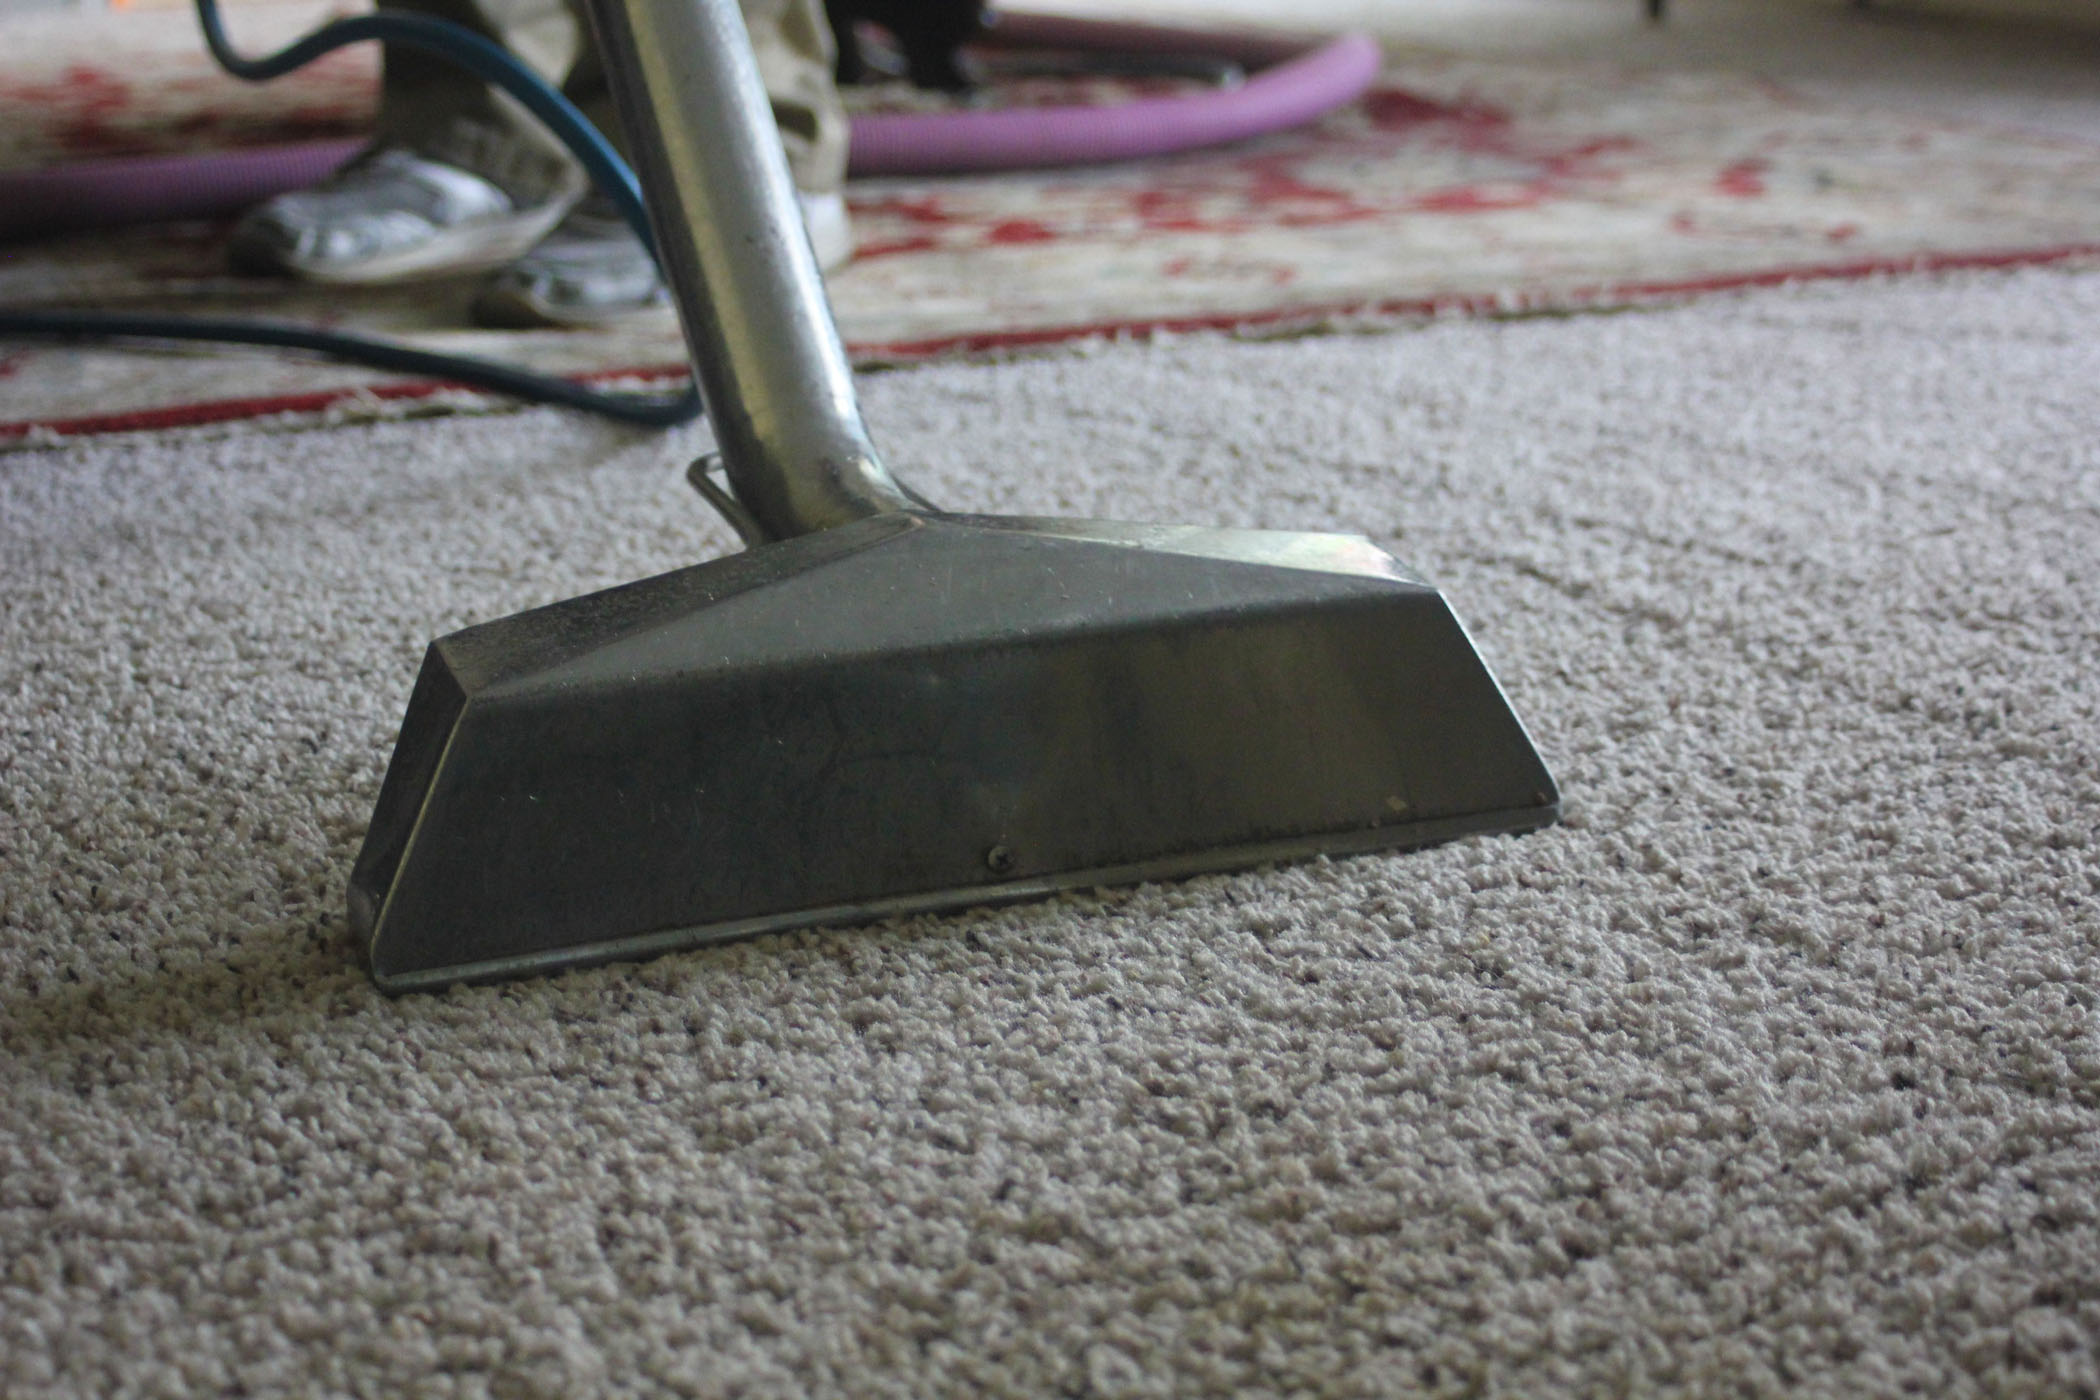 Carpet Cleaning in Franklin, Brentwood, & Nashville, TN